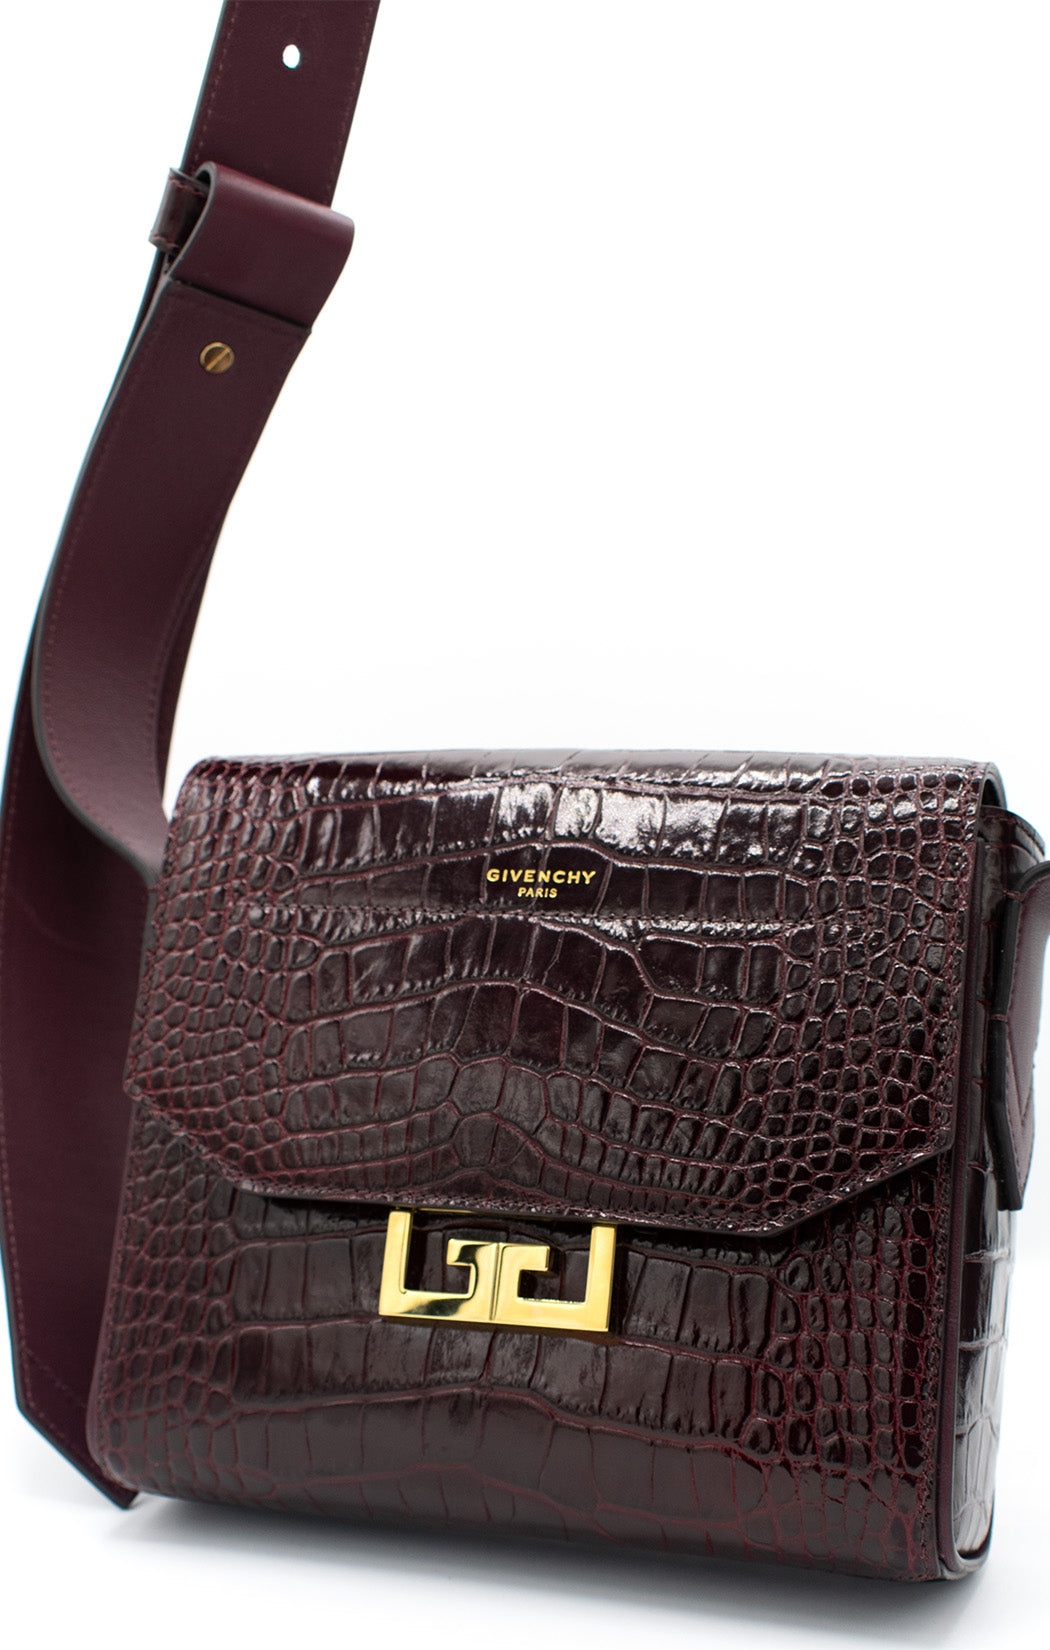 "Front view of GIVENCHY Croc embossed leather handbag Size: 7.5"" H, 7.5"" W, 2"" D"